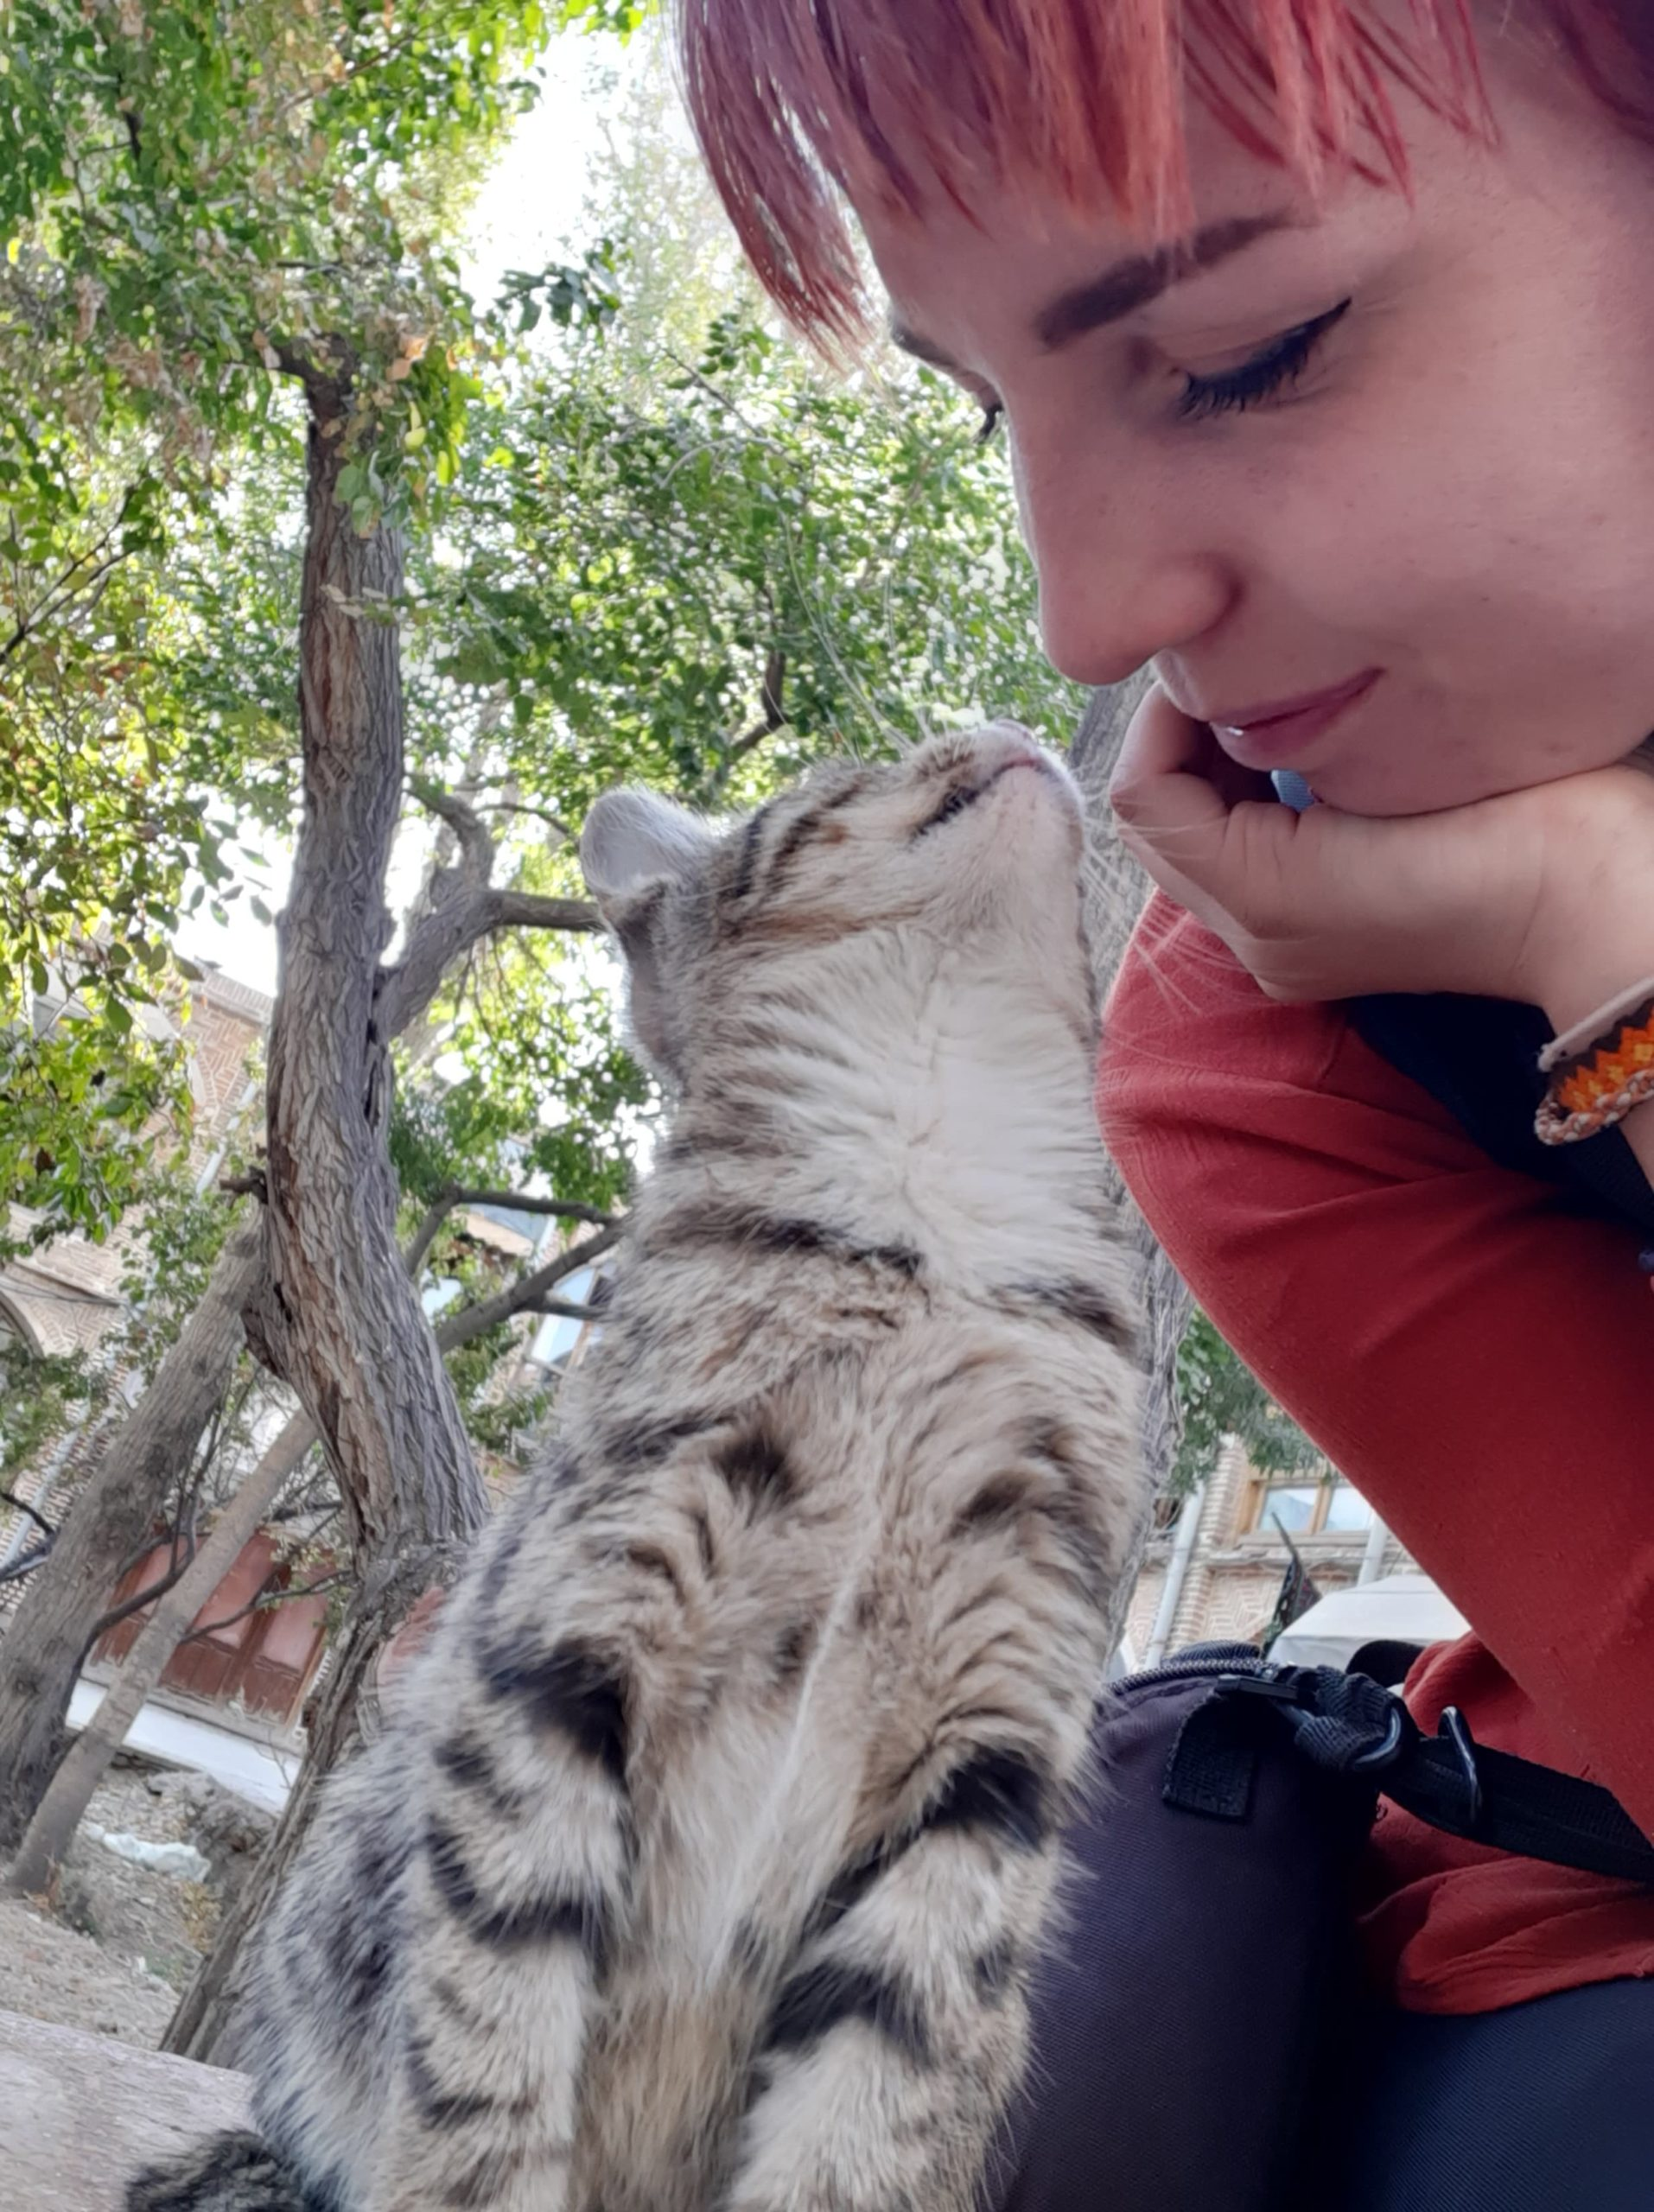 Sustainabe traveller plays with a cute cat at an eco backpackers hostel in Iran